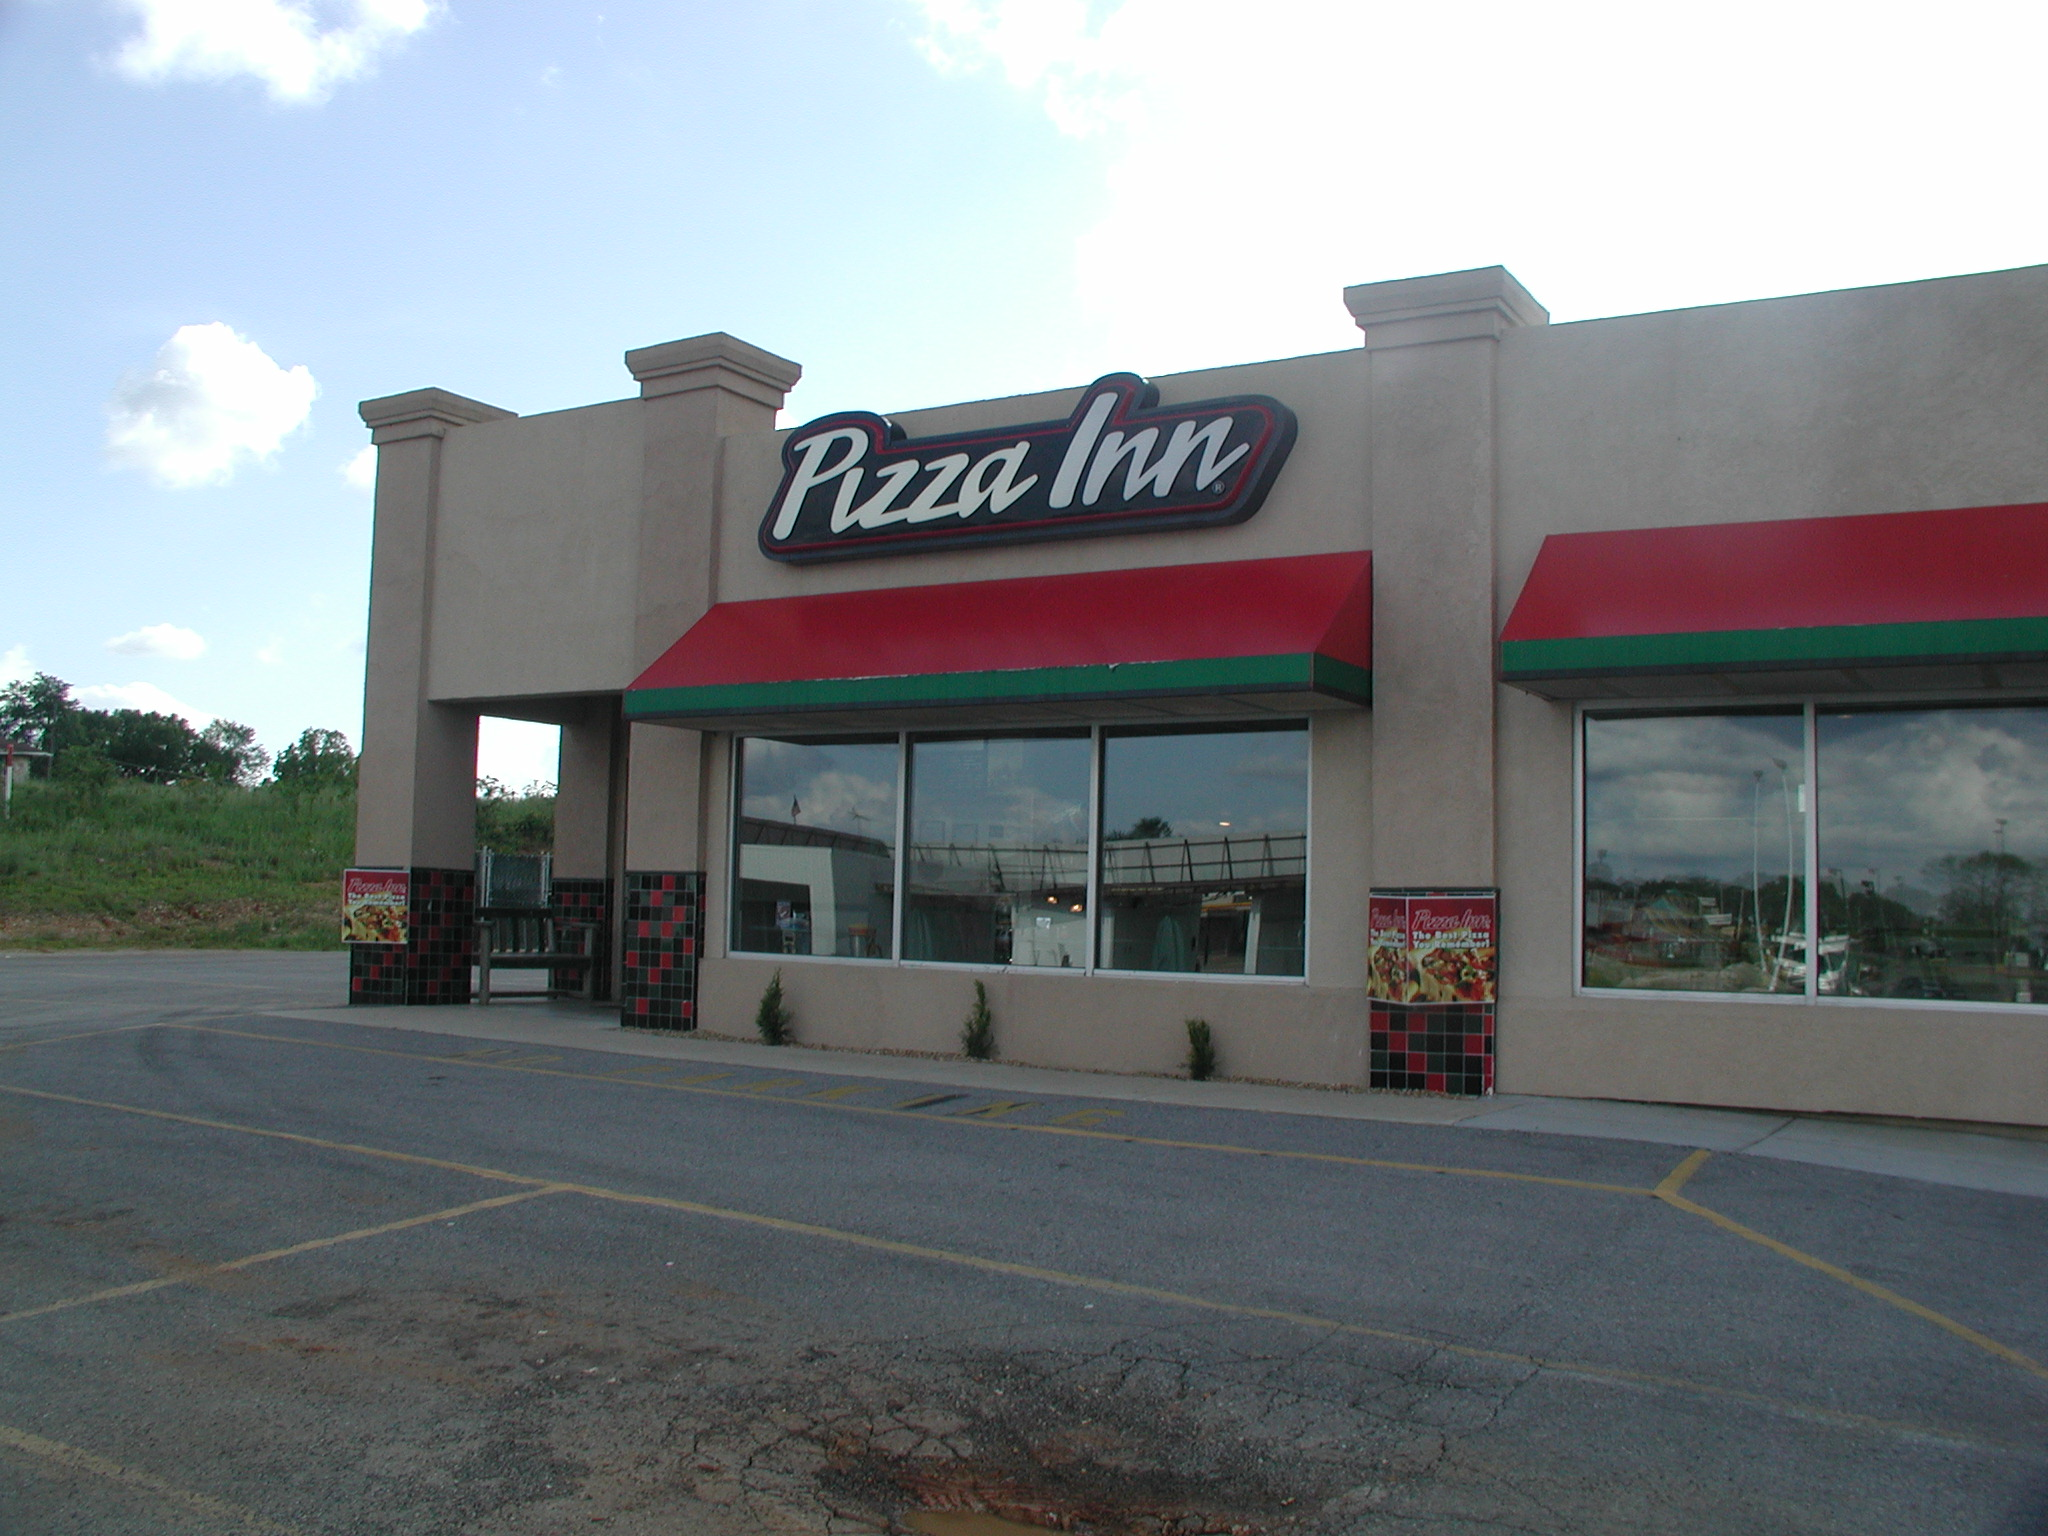 Pizza Inn (Poplar Bluff, MO) 8 hrs · Sunday Funday! All day buffet here at Pizza Inn! See All. Videos. Bro Buffet Night at Pizza Inn is here! $ buffets for all the guys, tonight starting at pm! 3. We have some winners! Thank you for participating in our giveaway, everyone!/5(96).